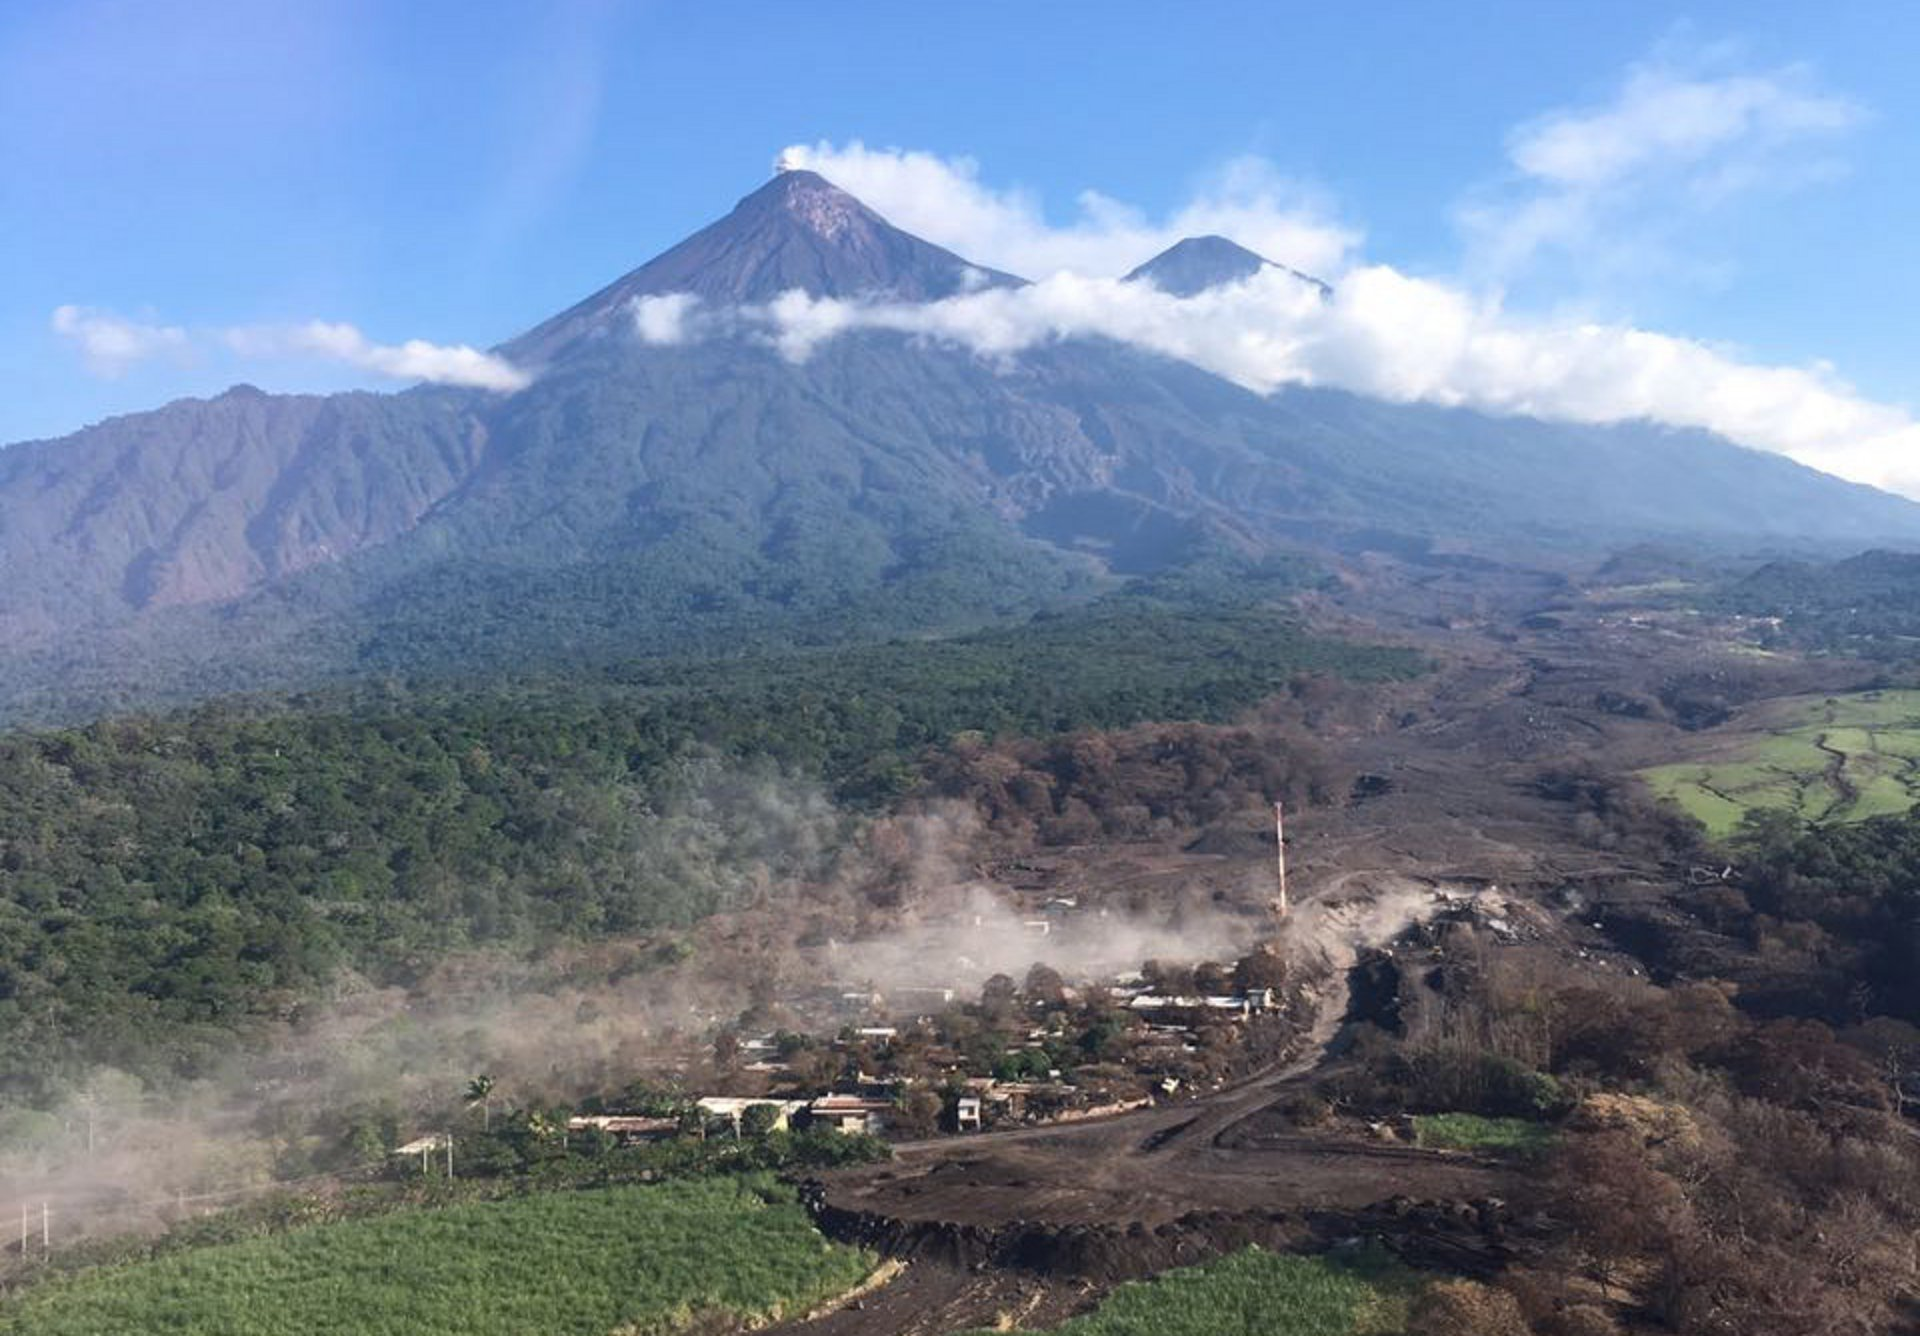 Airbus Foundation provides assistance in Guatemala after the eruption of the Volcán de Fuego